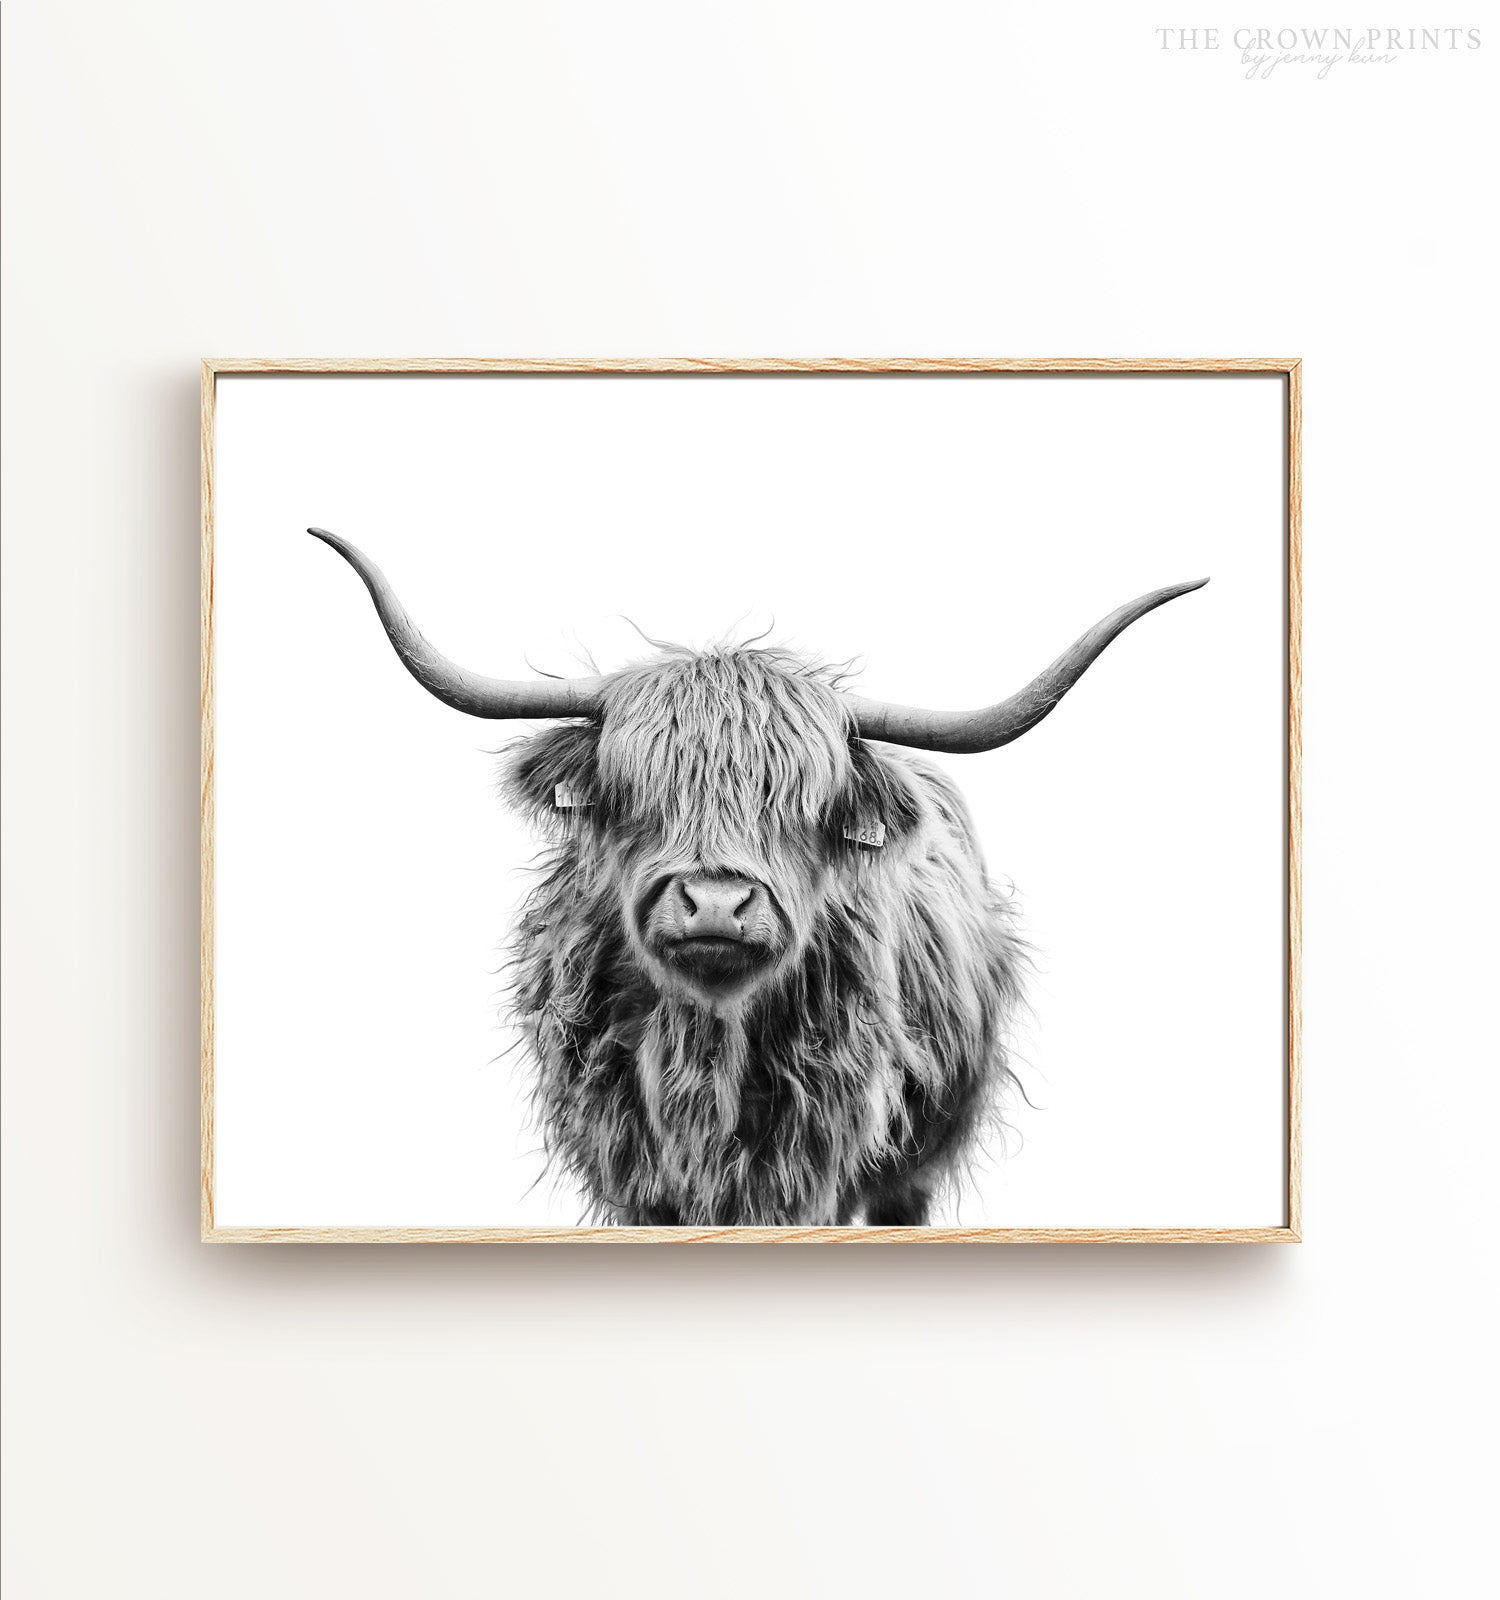 Highland Cow No 3 Black And White Printable Art The Crown Prints